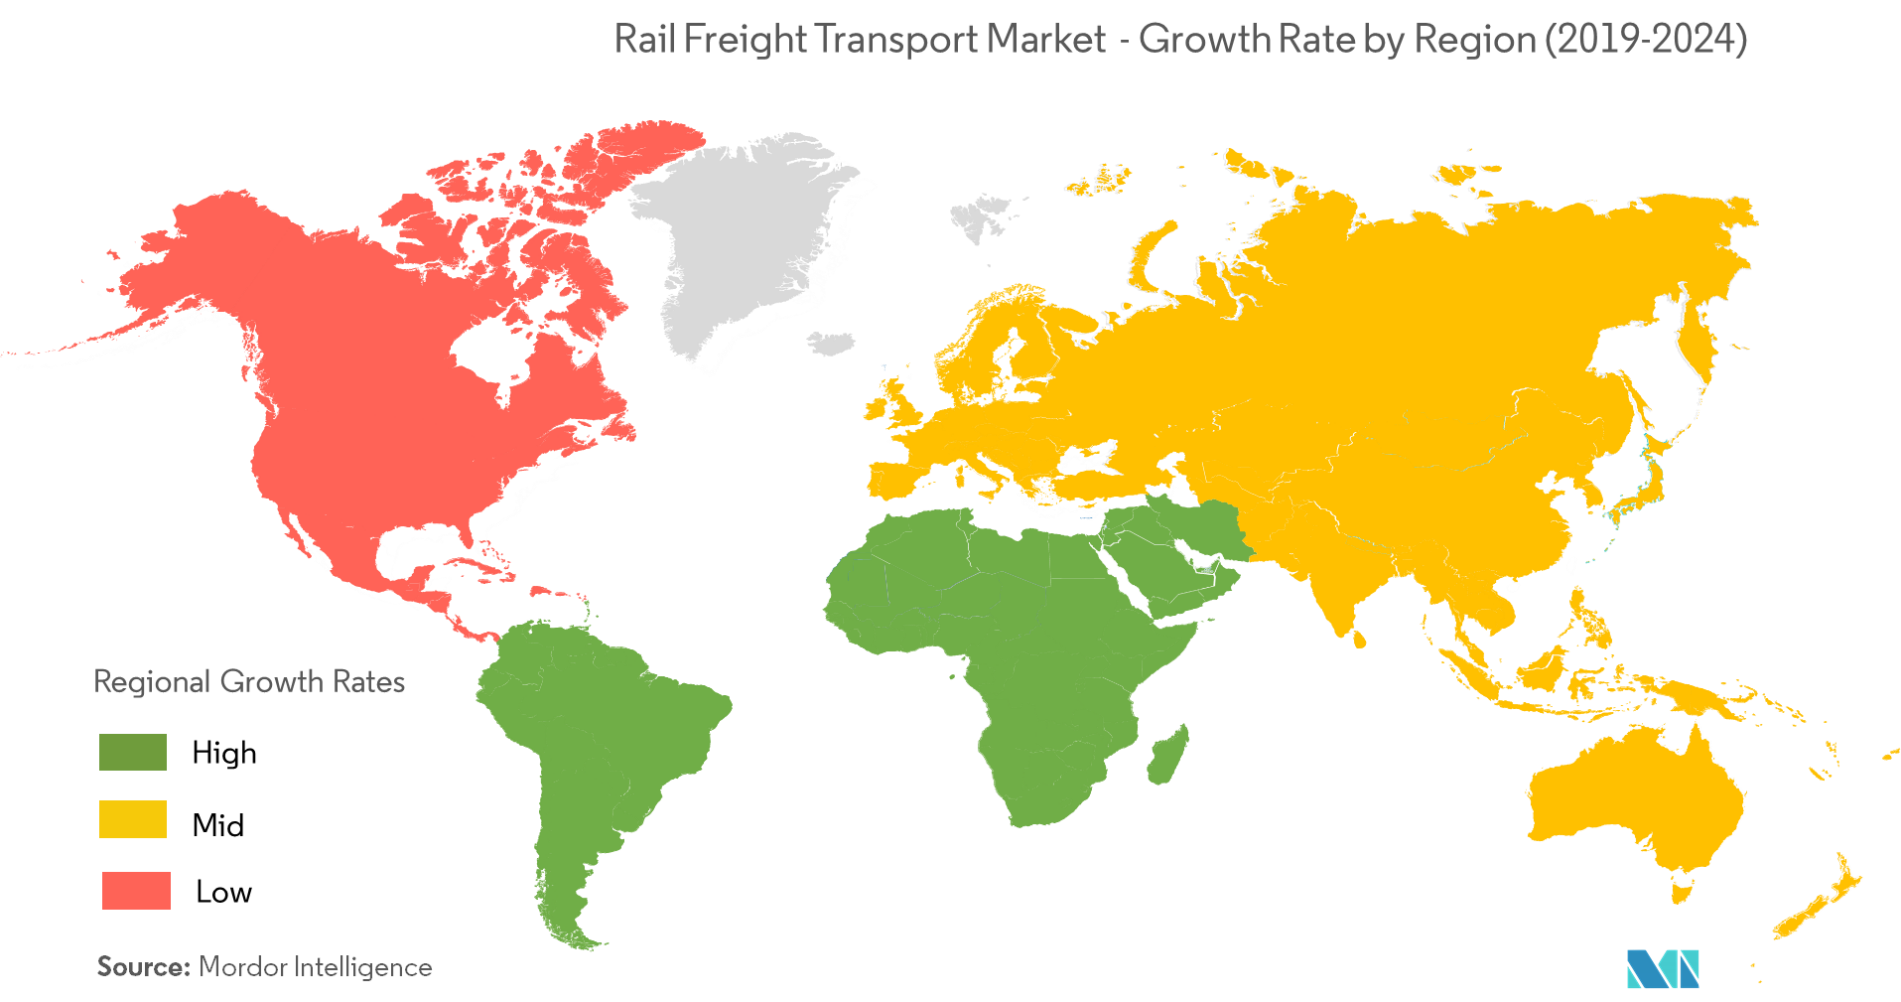 Rail Freight Transport Market   Growth, Trends, and Forecast